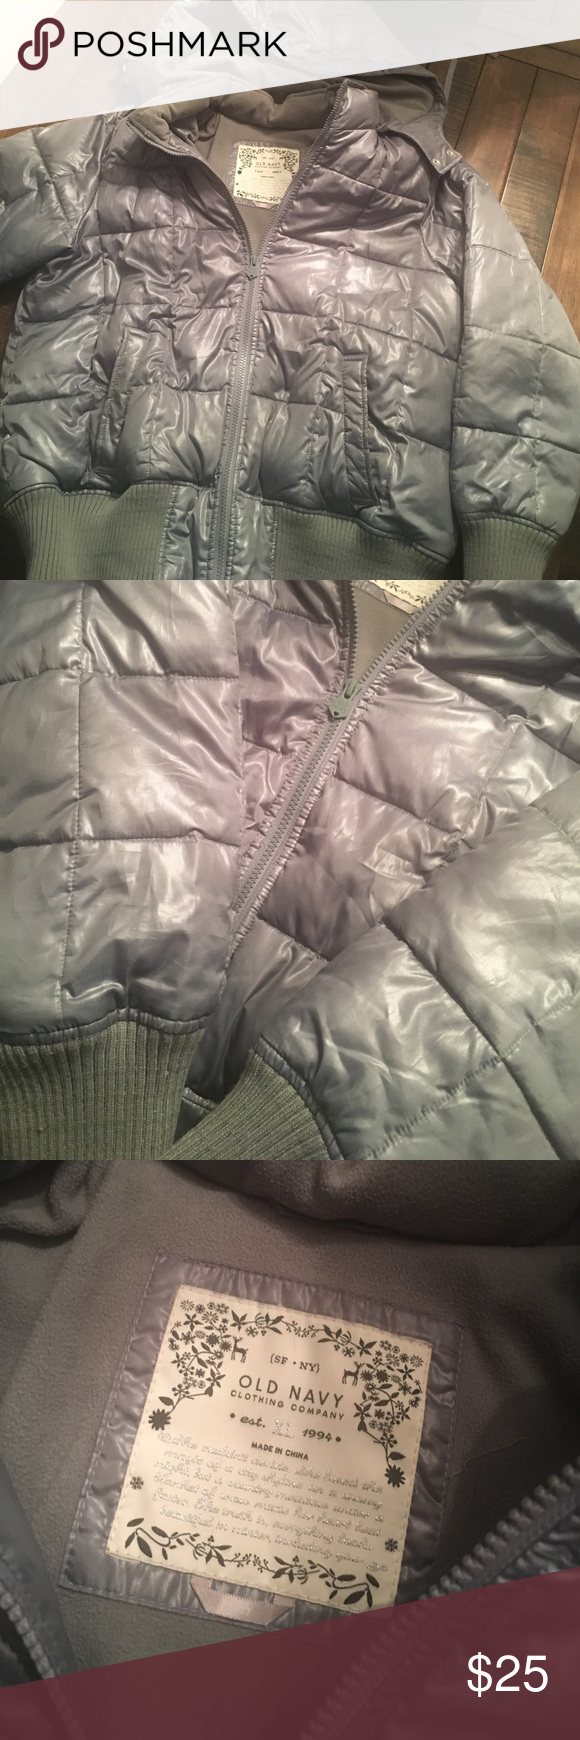 Old Navy WARM Puffy Jacket This is a fantastic jacket from Old Navy! I've only worn it for a handful of times. Old Navy Jackets & Coats Puffers